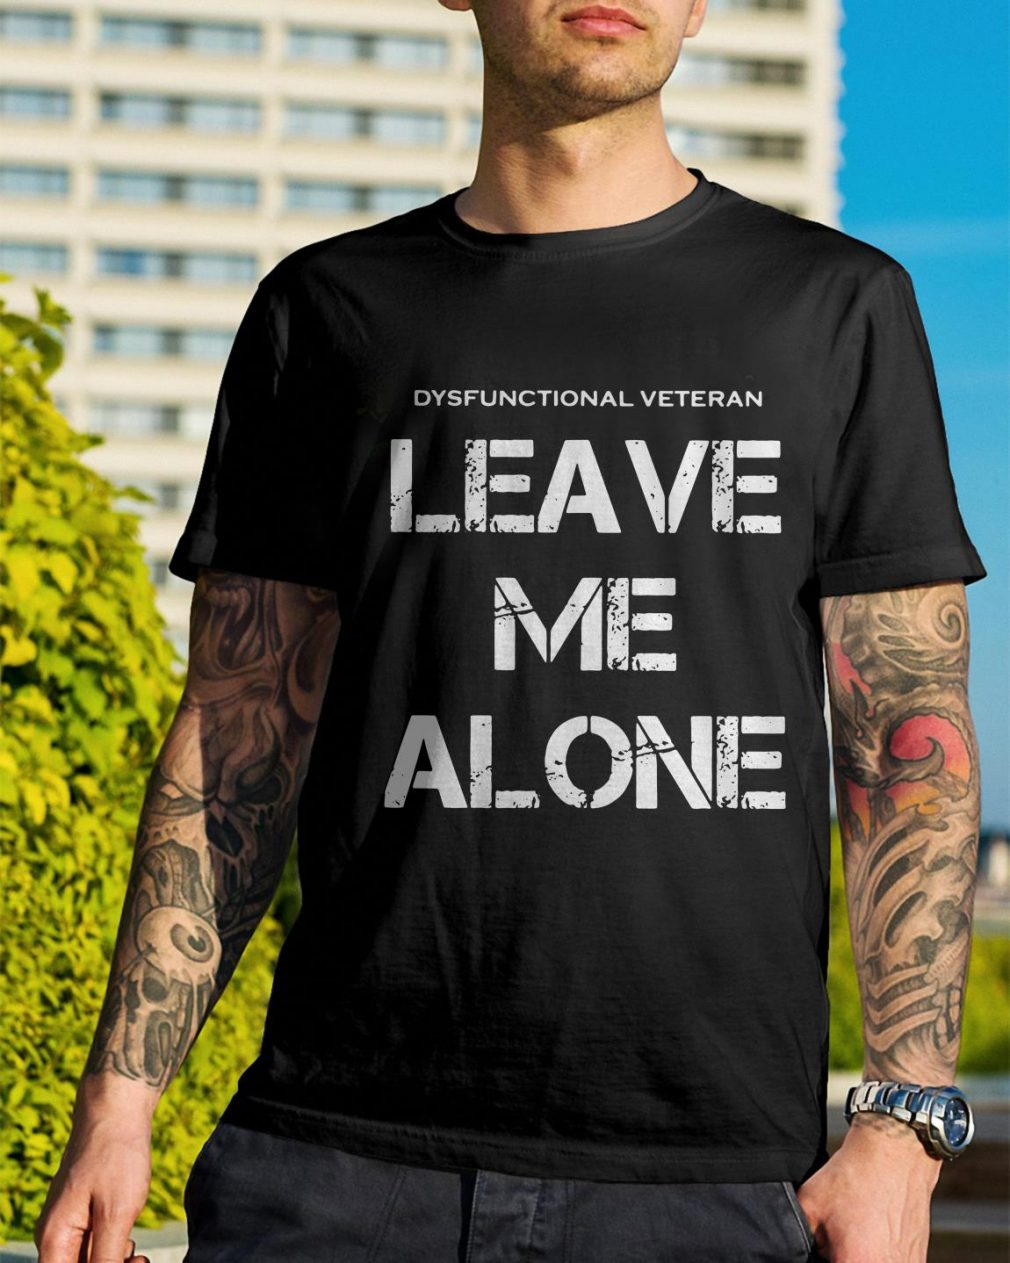 Dysfunctional Veteran leave me alone shirt